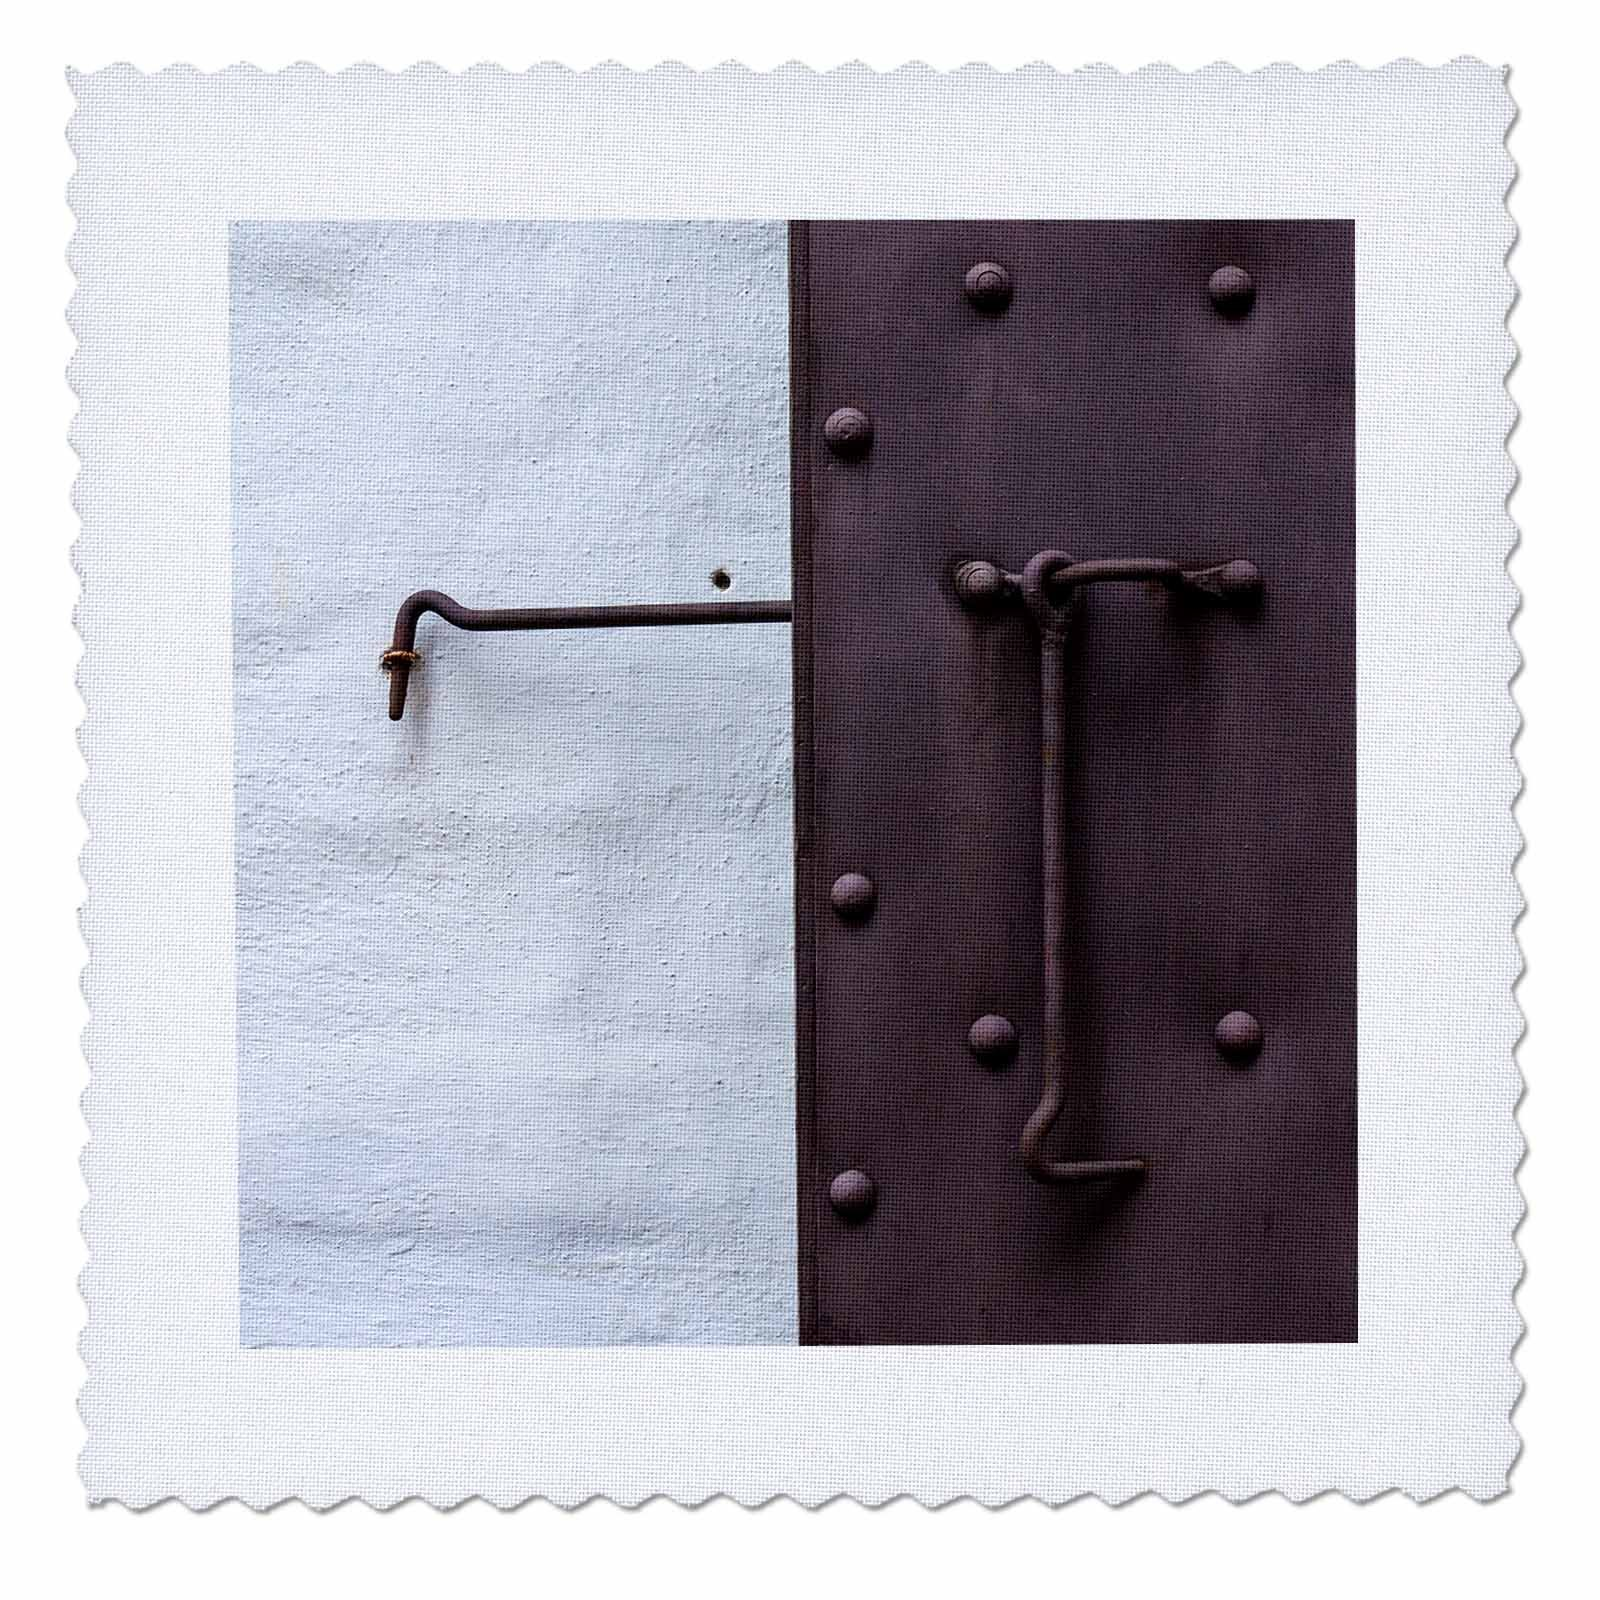 3dRose Alexis Photography - Objects - White wall, window shutter, iron hooks. Allegory of Day and Night - 22x22 inch quilt square (qs_267247_9)